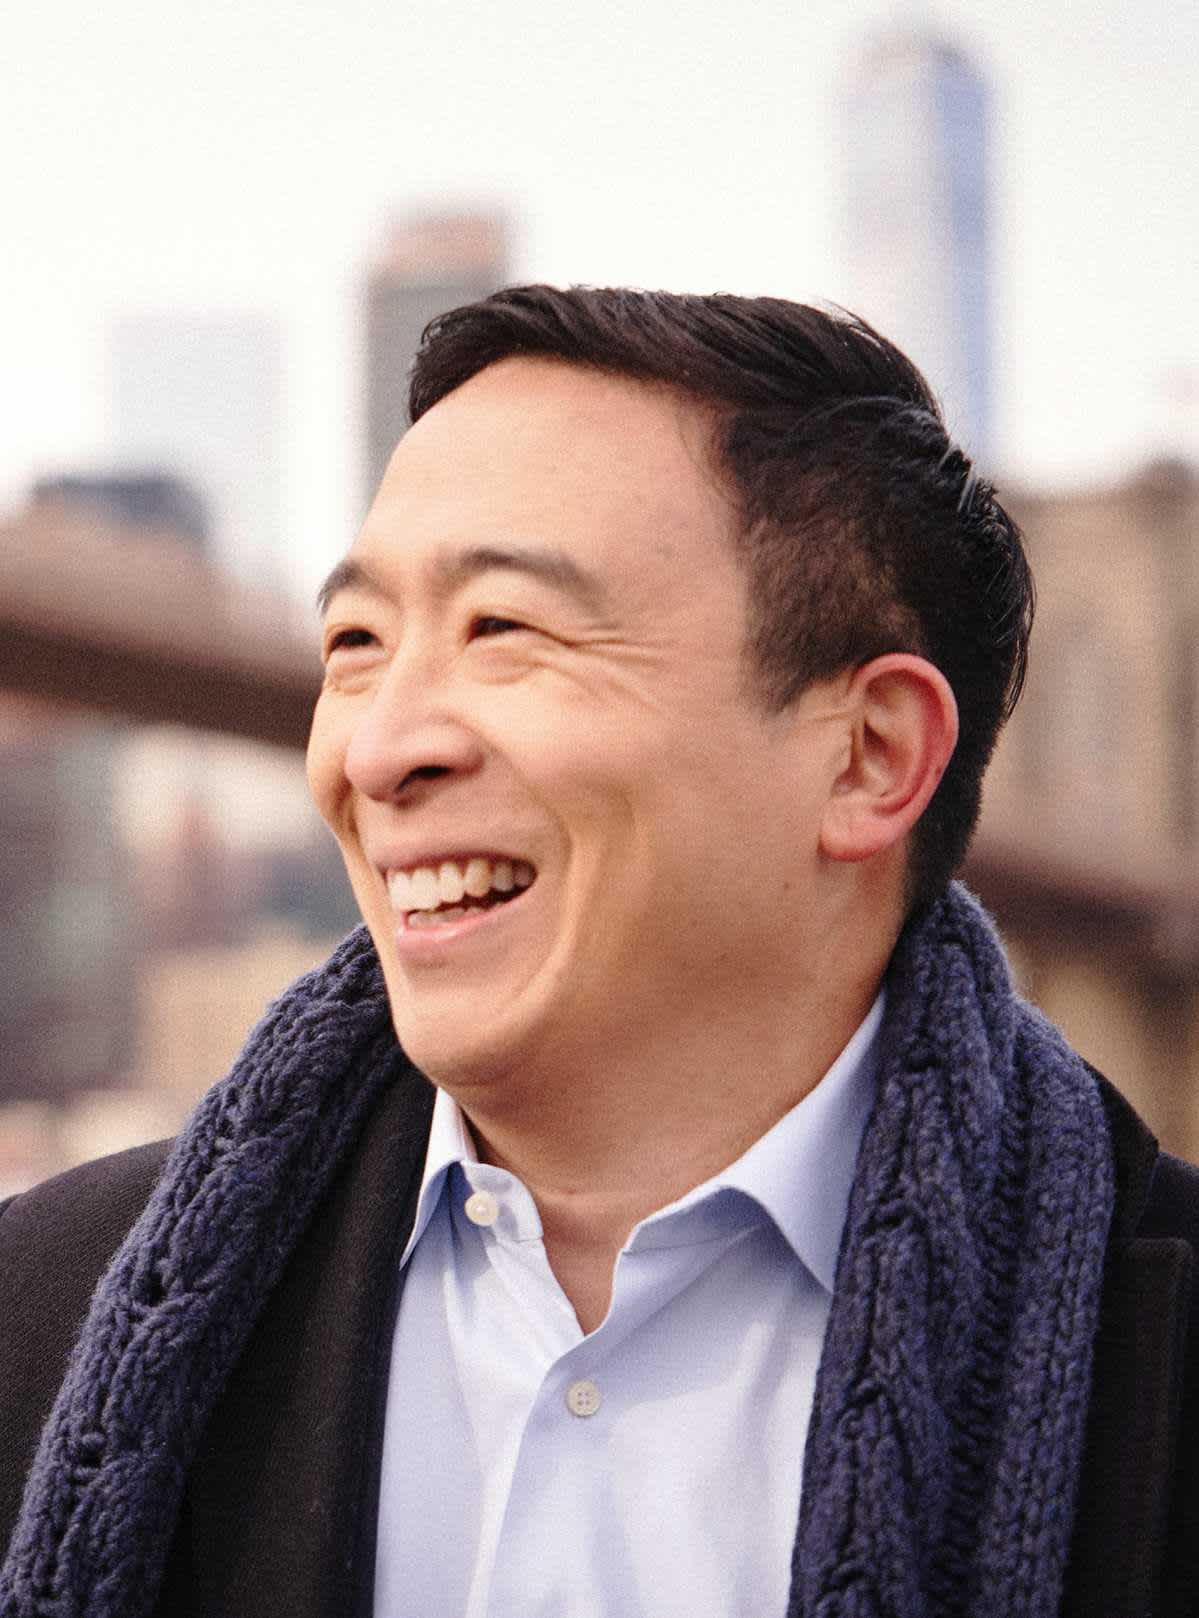 Andrew Yang in New York City during his campaign for Mayor